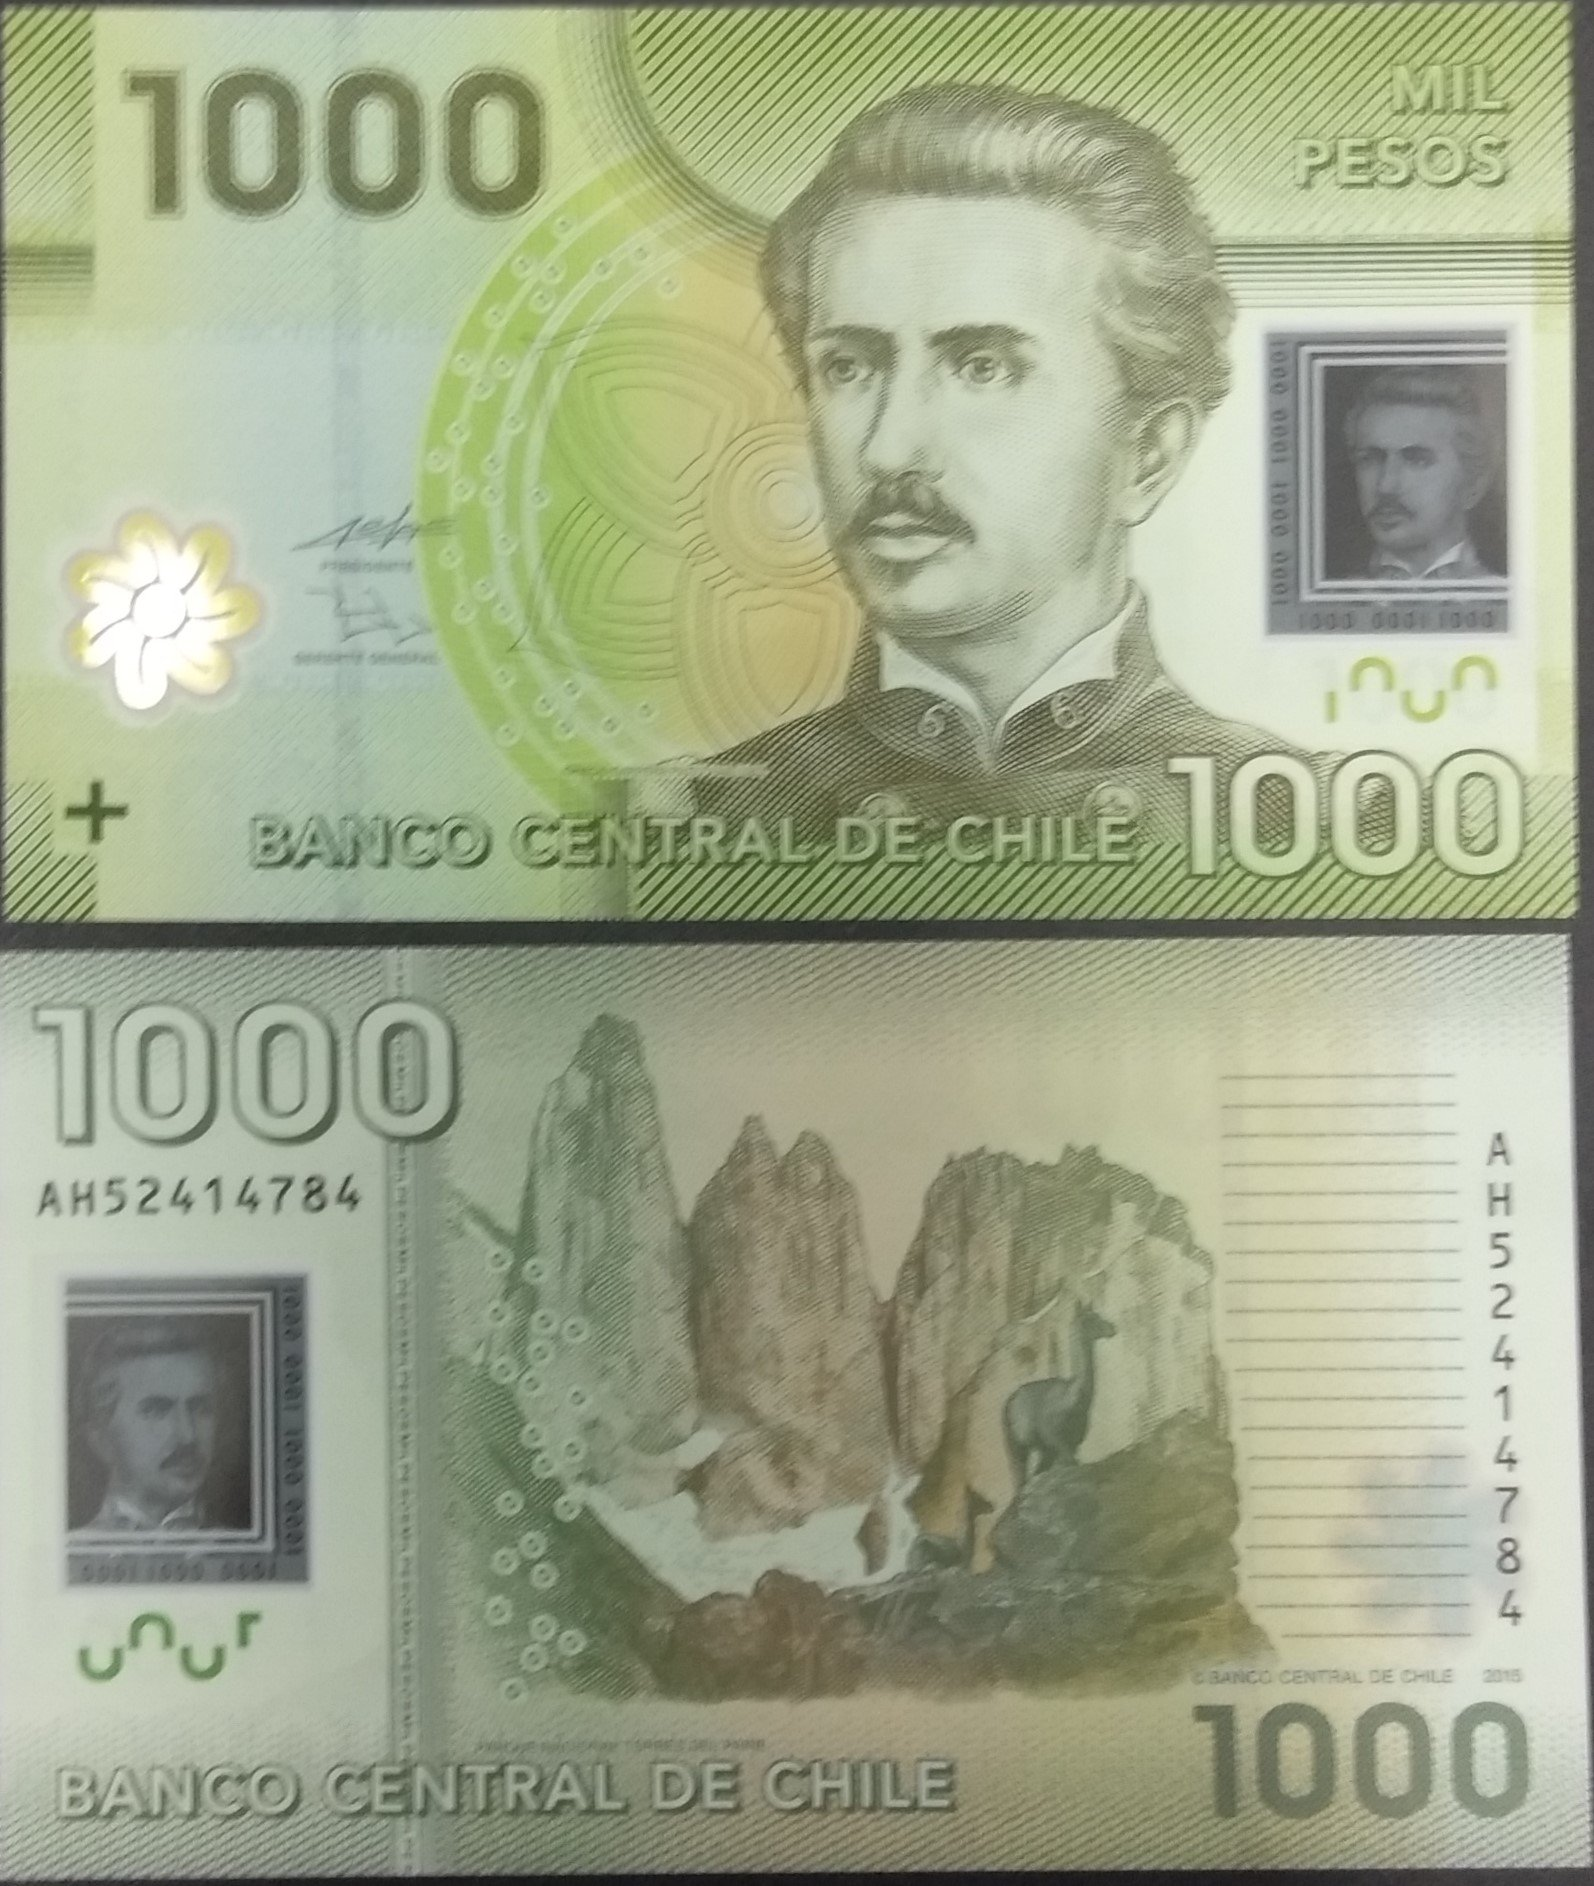 Chile 1000 pesos polymer banknote for sale